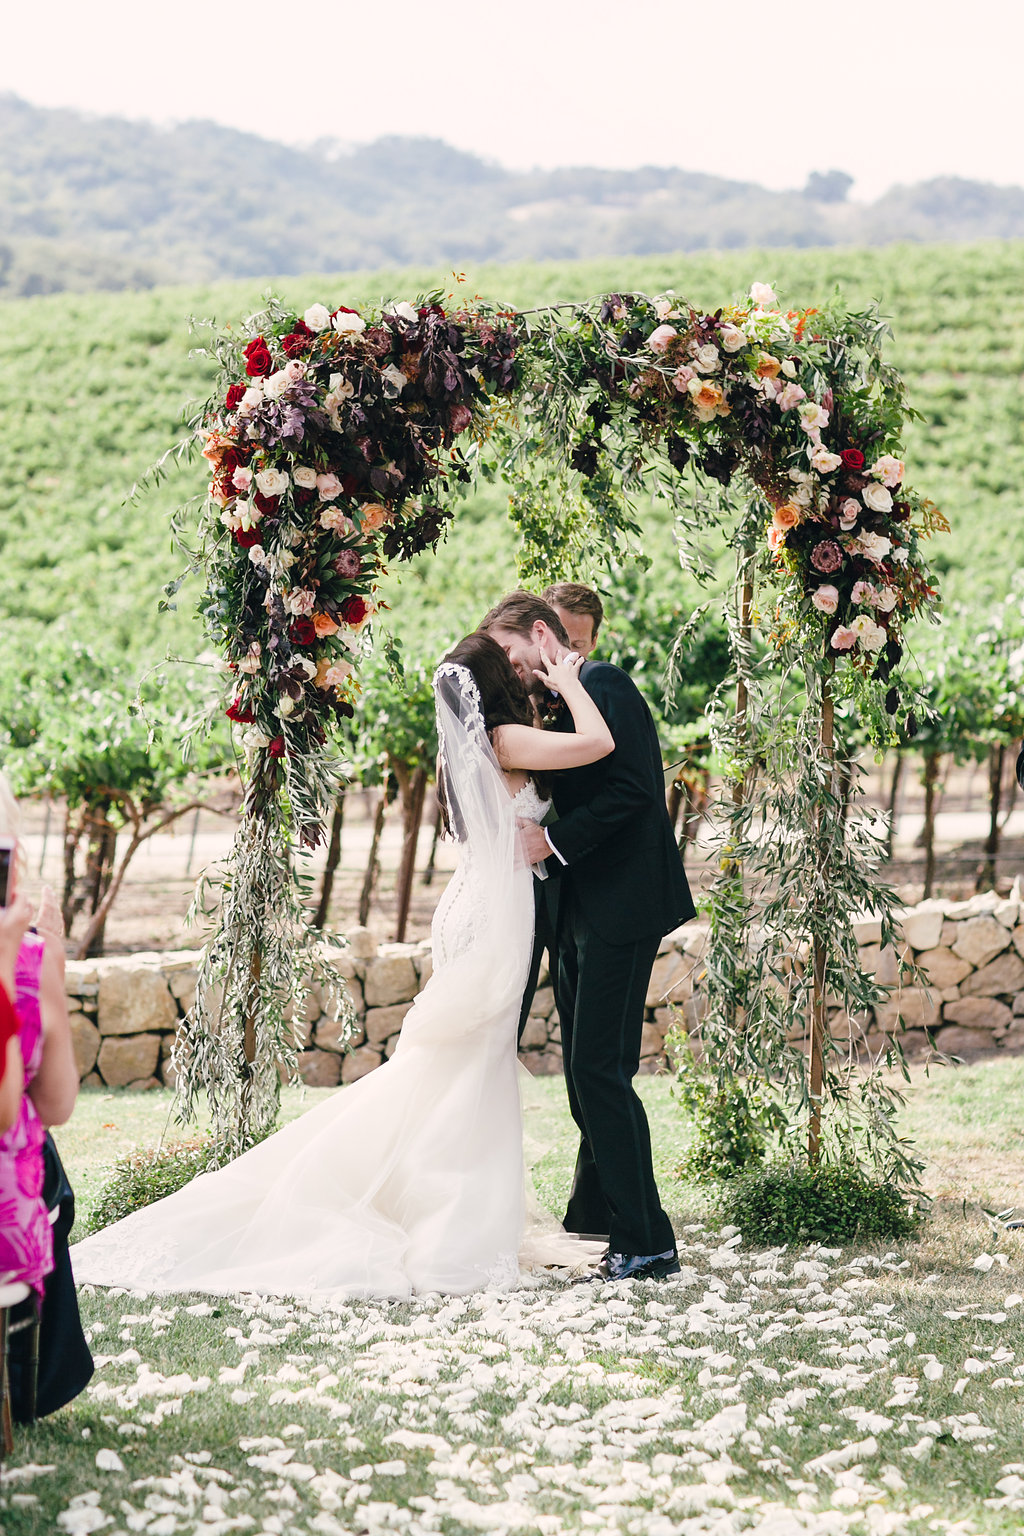 Sneak Peek: M+C's Hammersky Vineyards Wedding in Paso Robles, CA